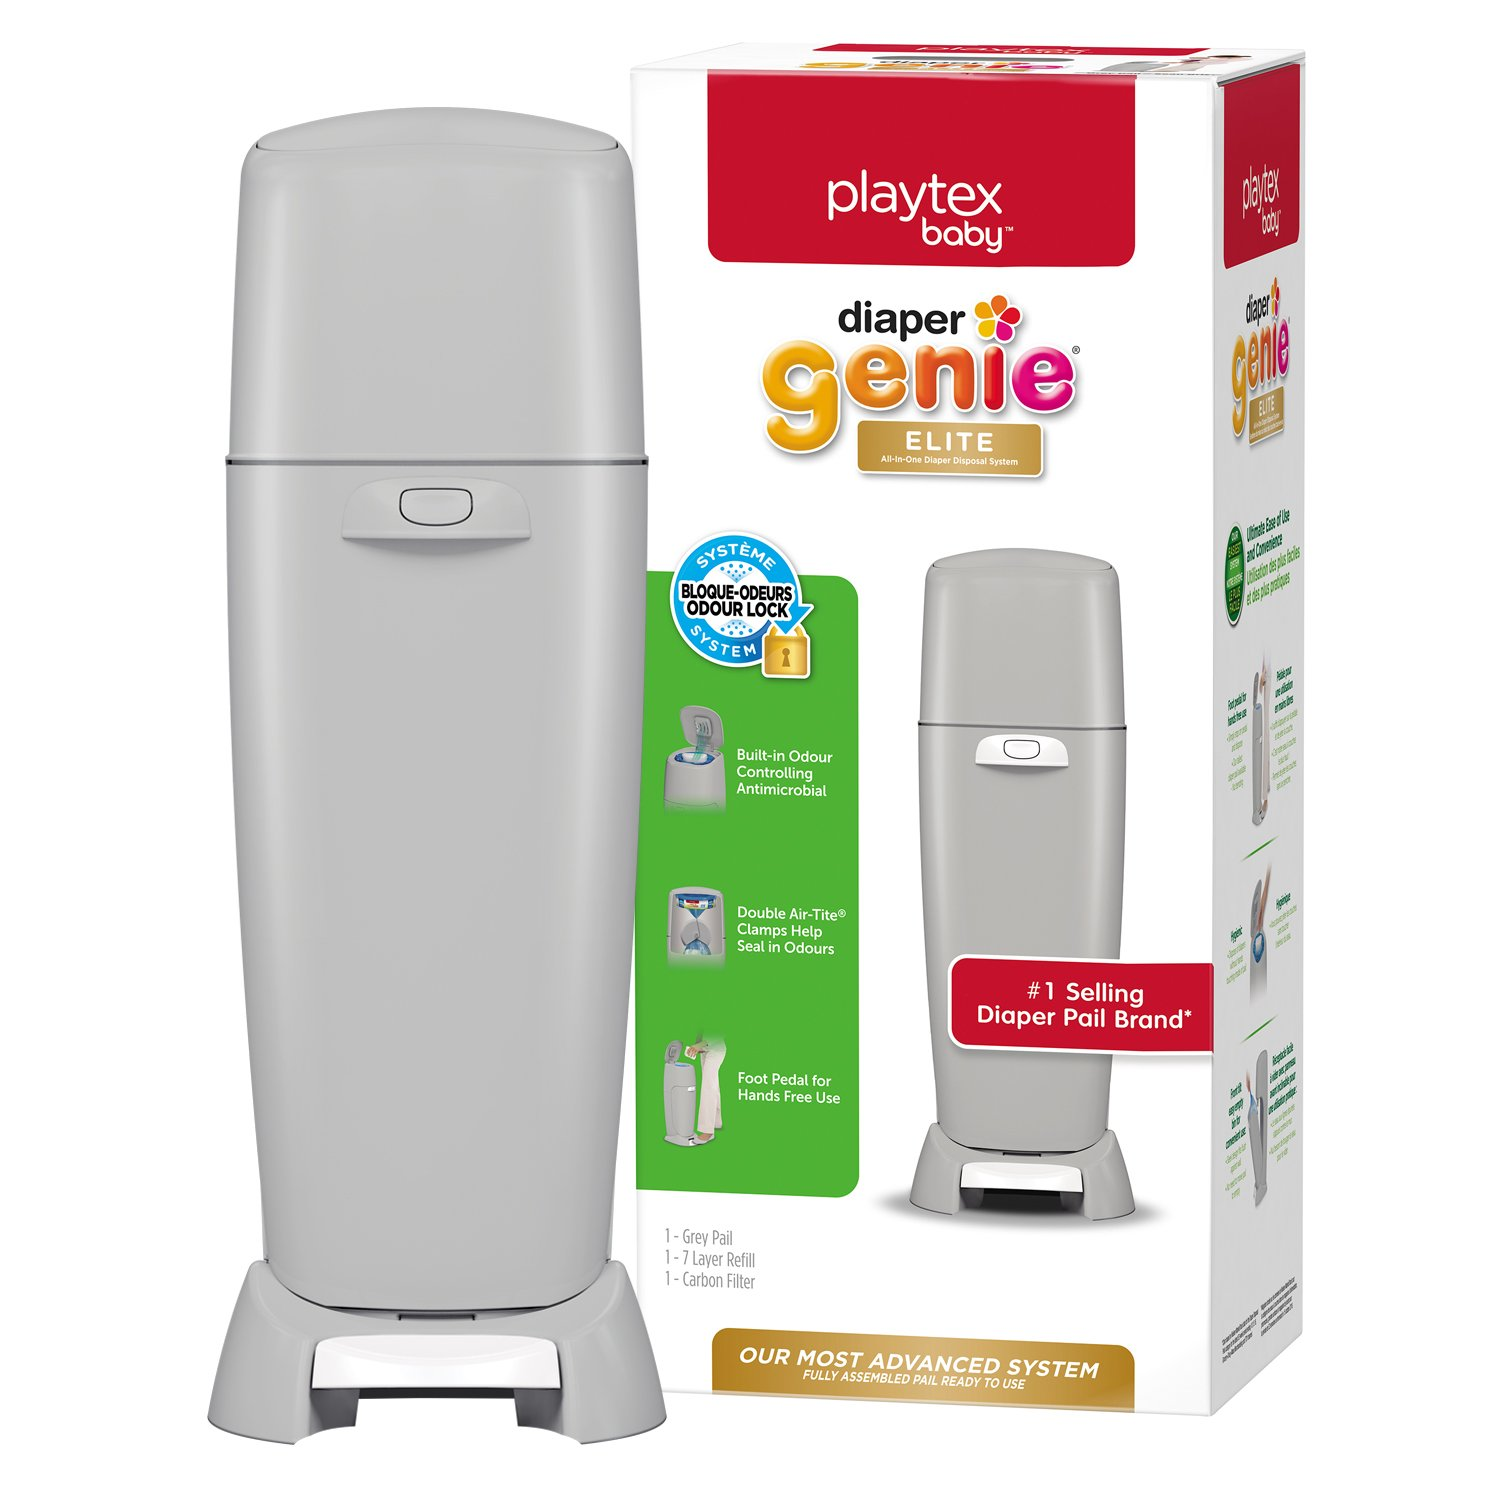 Playtex Baby Diaper Genie Elite Diaper Pail System with Front Tilt Pail for Easy Diaper Disposal, Gray Edgewell Personal Care